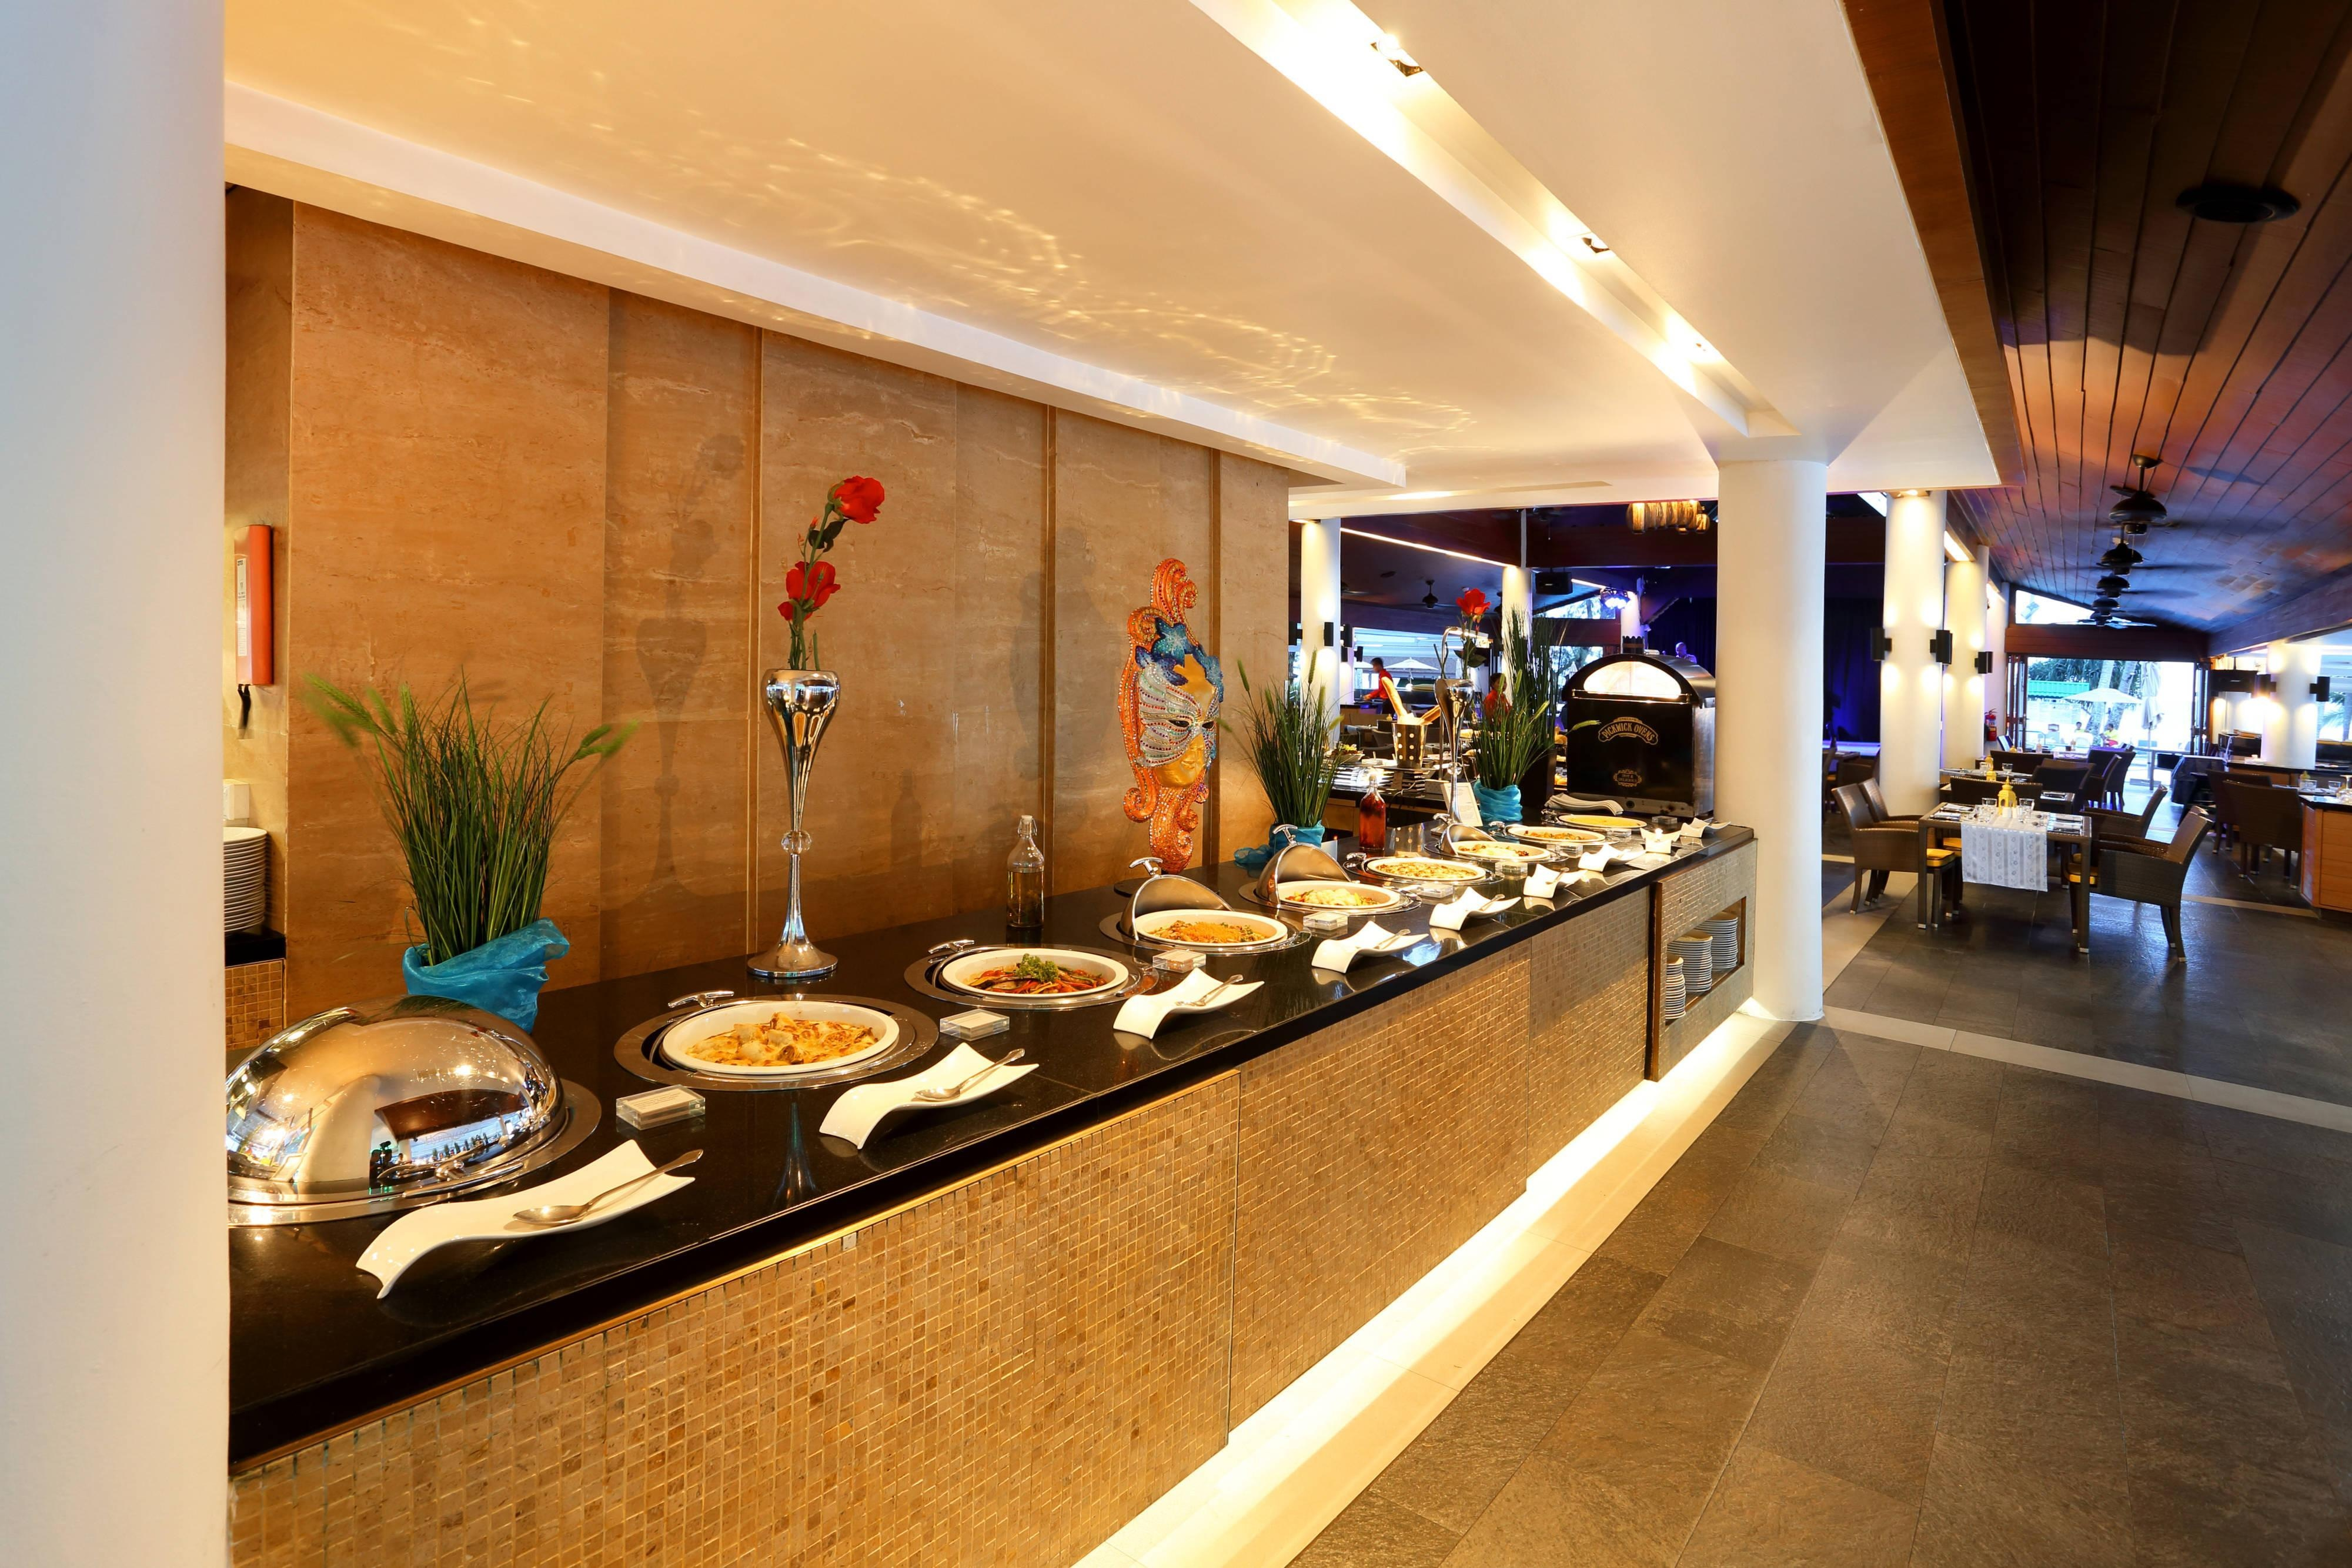 Pakarang Restaurant Buffet Section